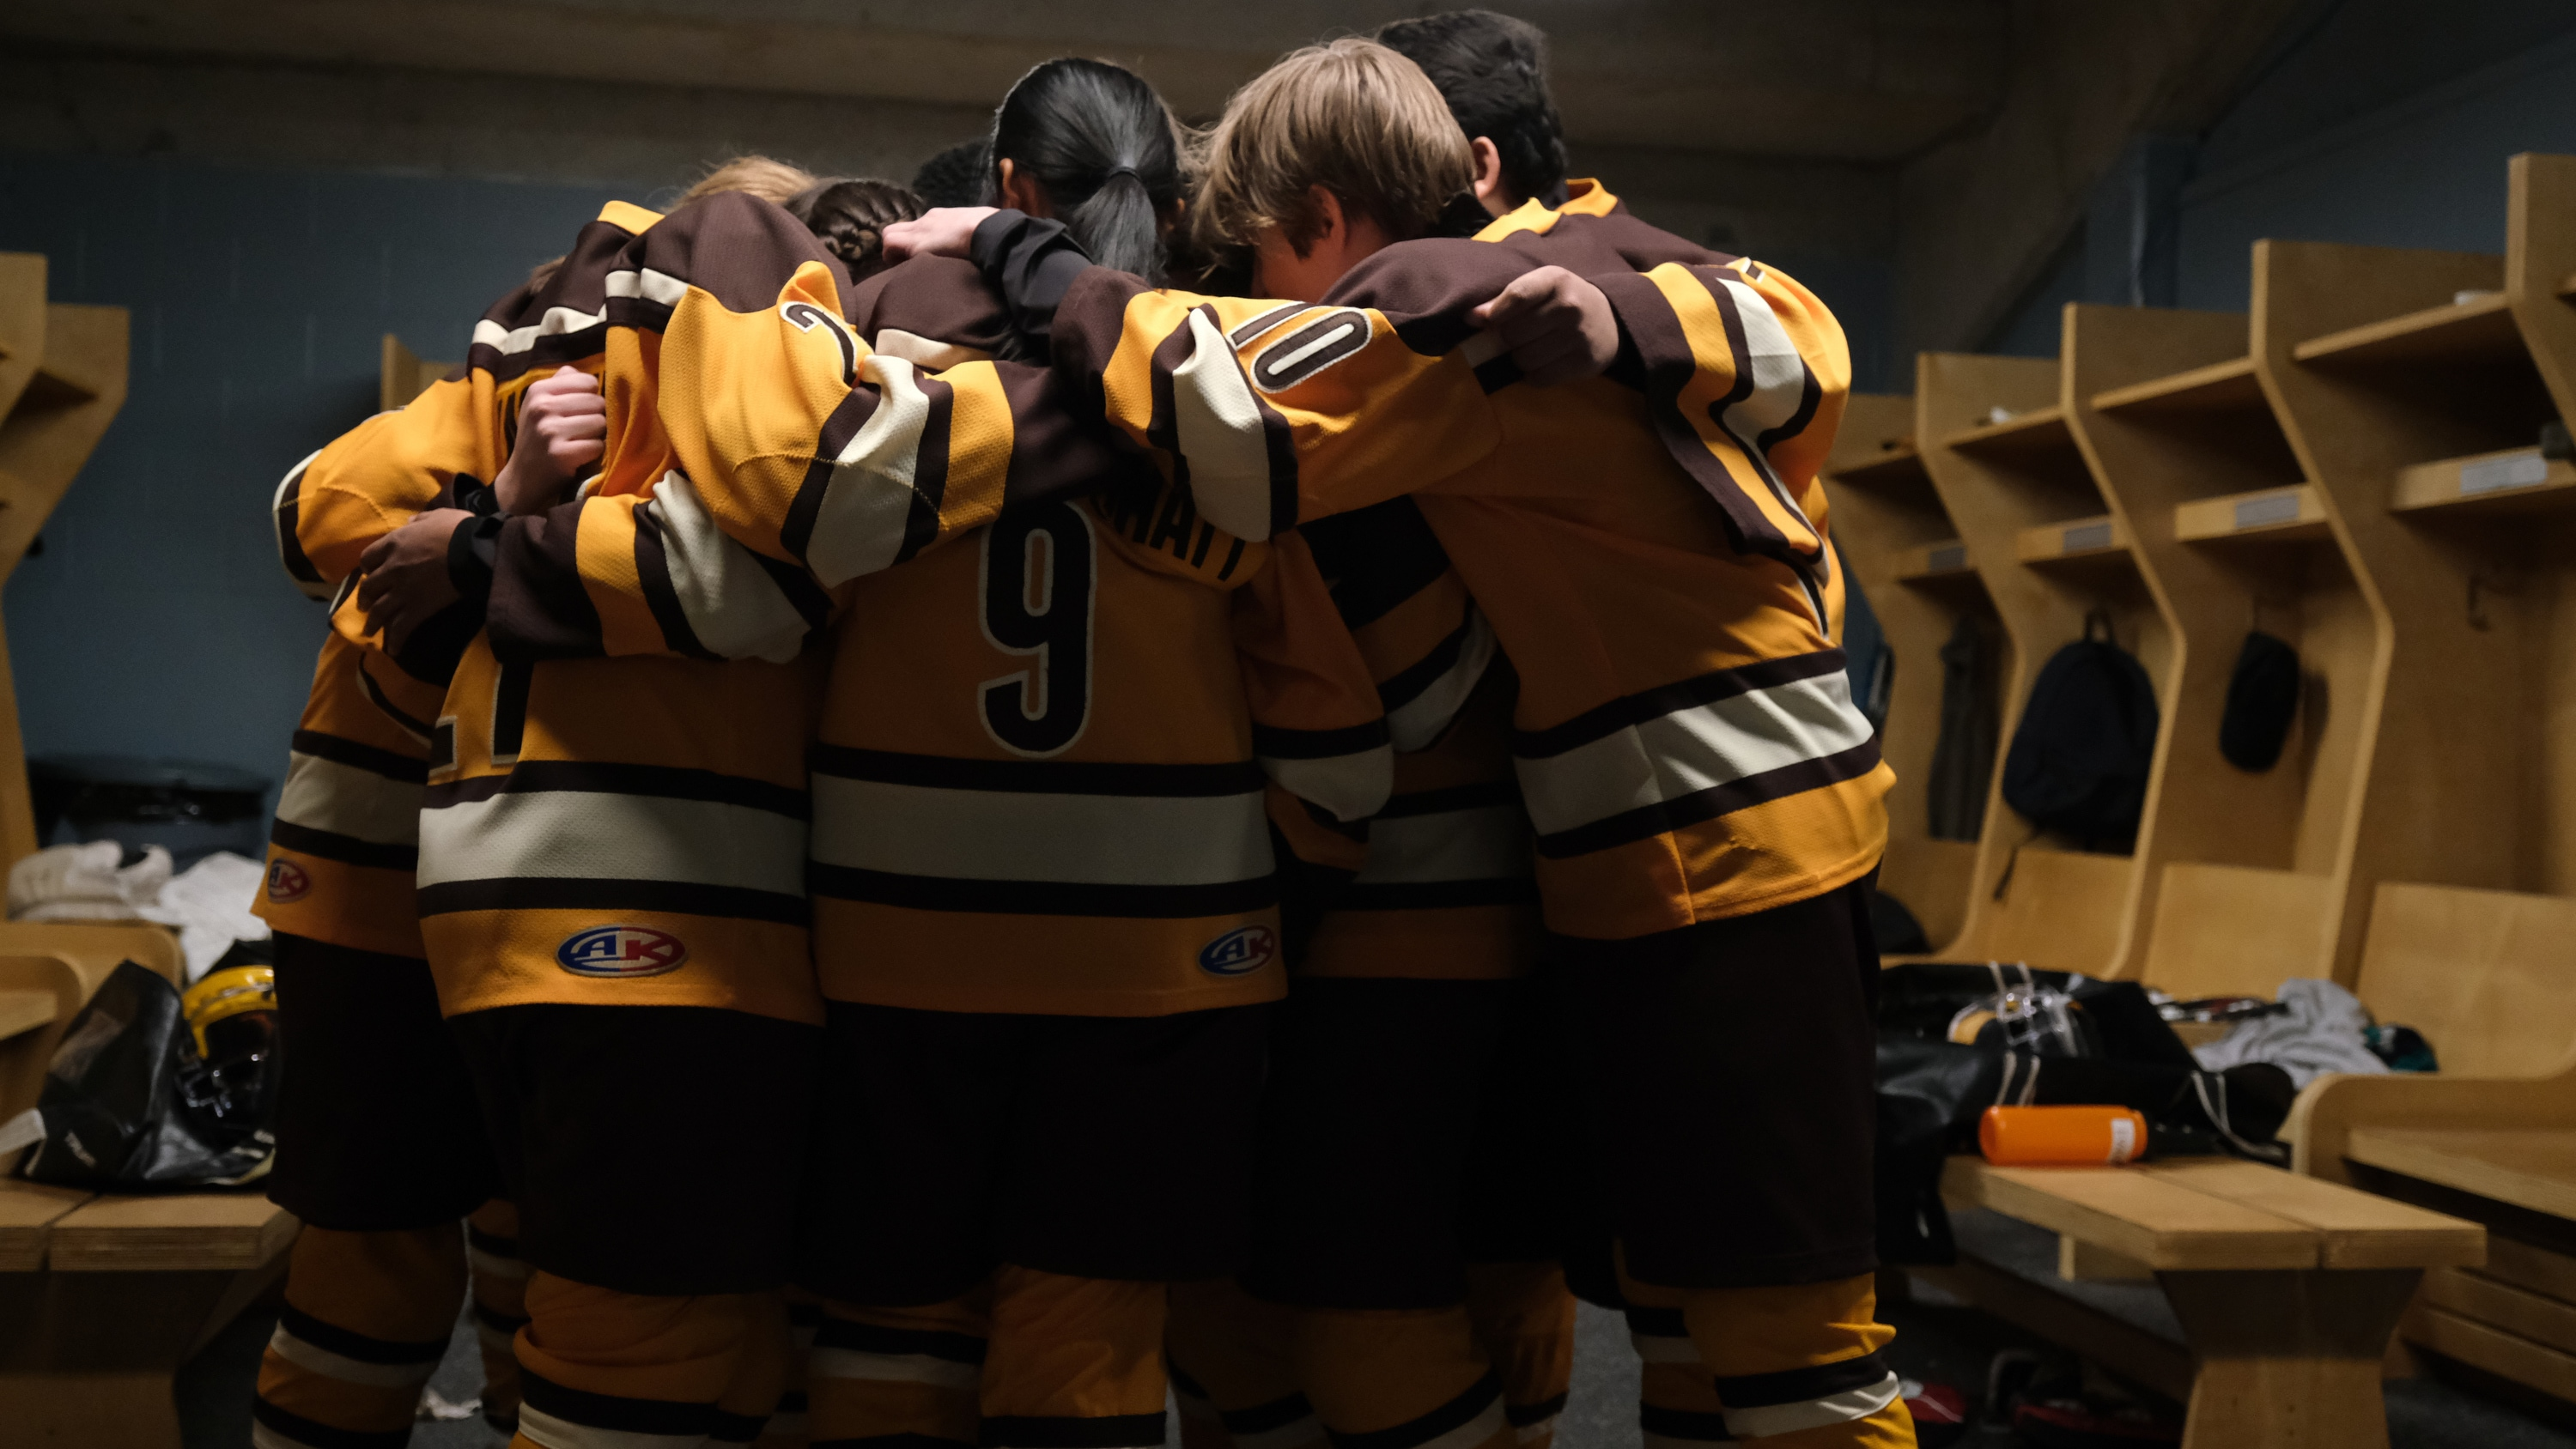 """THE MIGHTY DUCKS: GAME CHANGERS - """"State of Play"""" - The Don't Bothers are forced to choose what's really important, as they face the Ducks at States. (Disney/Liane Hentscher) THE MIGHTY DUCKS: GAME CHANGERS"""